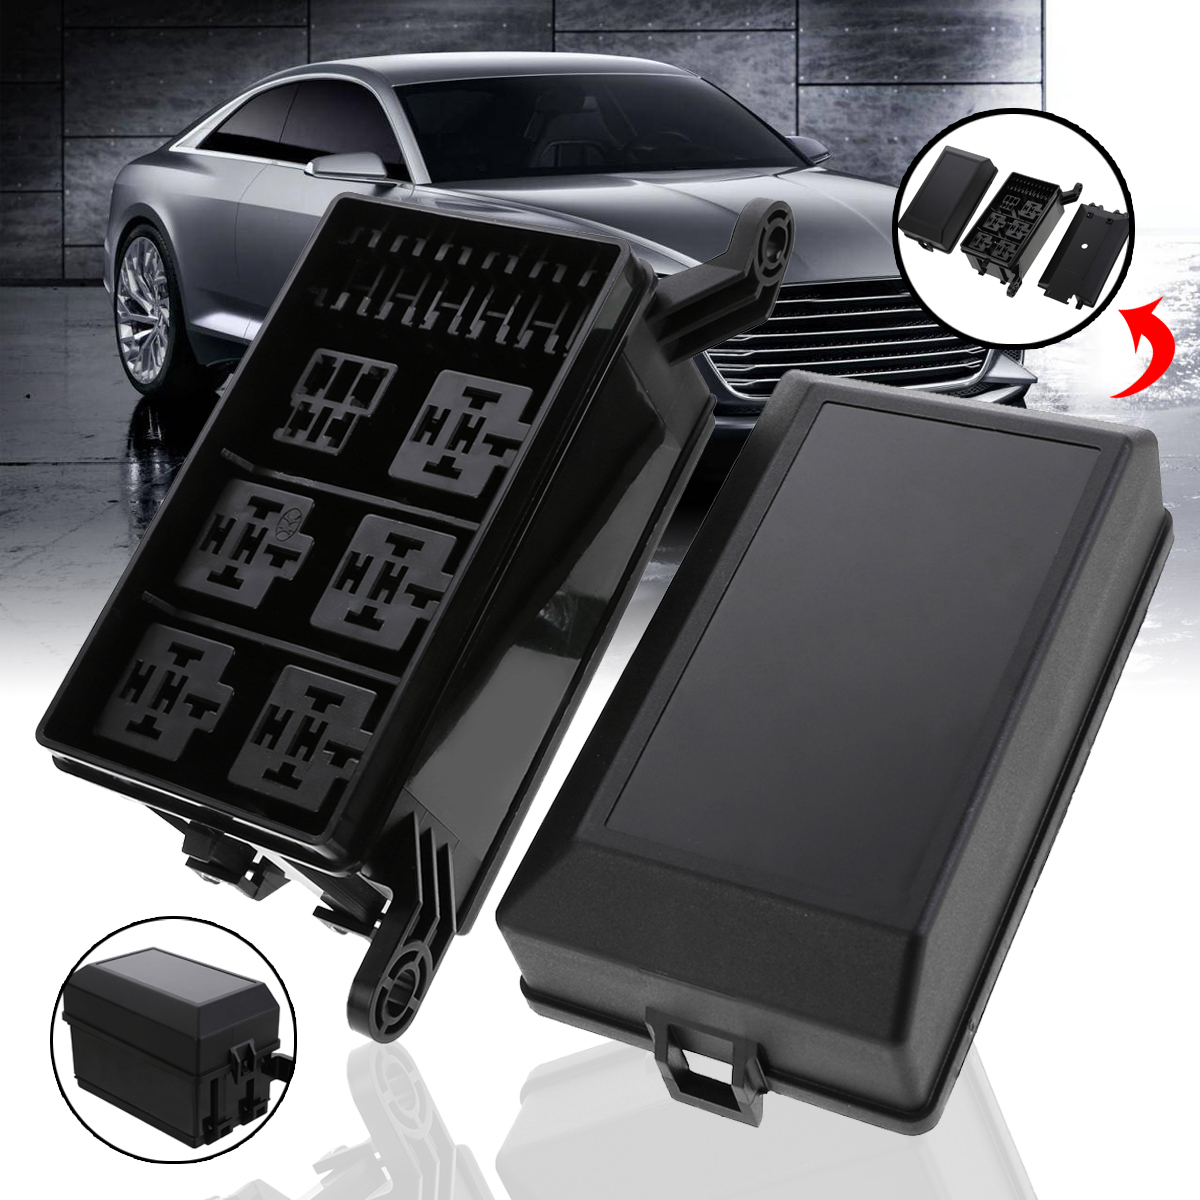 universal for all vehicles 12 slot relay box 6 relays 6. Black Bedroom Furniture Sets. Home Design Ideas